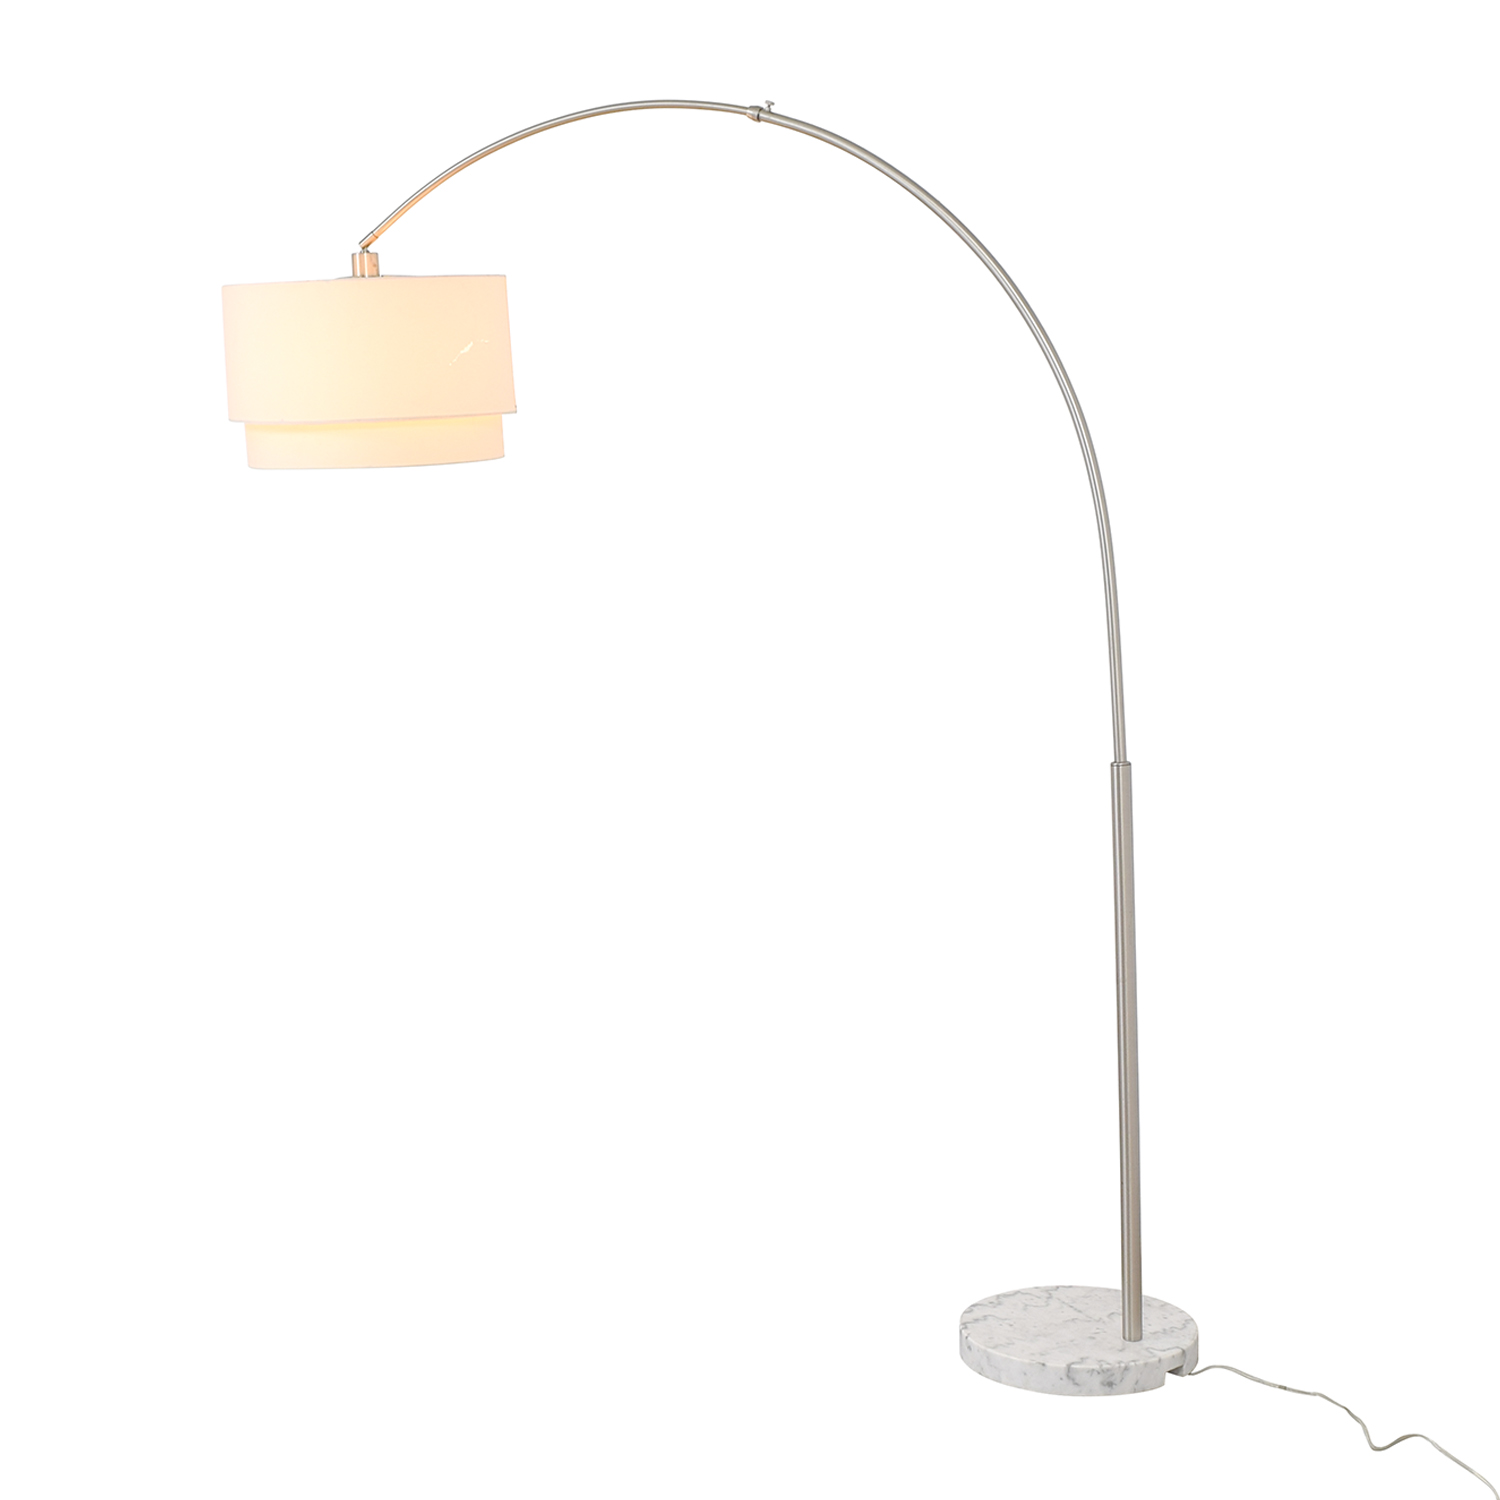 shop Crate & Barrel Meryl Arc Floor Lamp Crate & Barrel